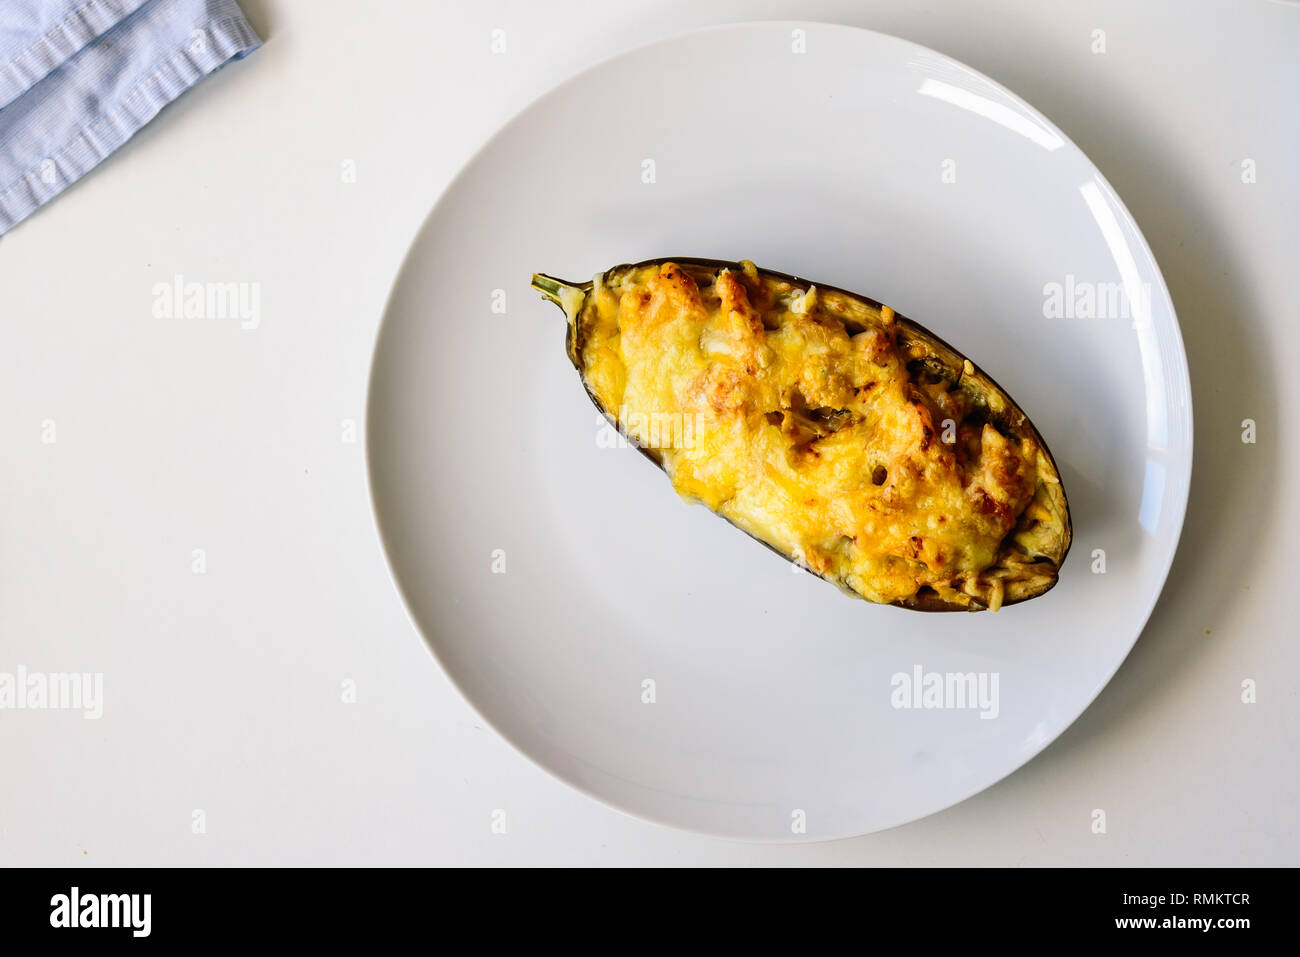 Half aubergine stuffed with meat with grated cheese in a white dish - Stock Image